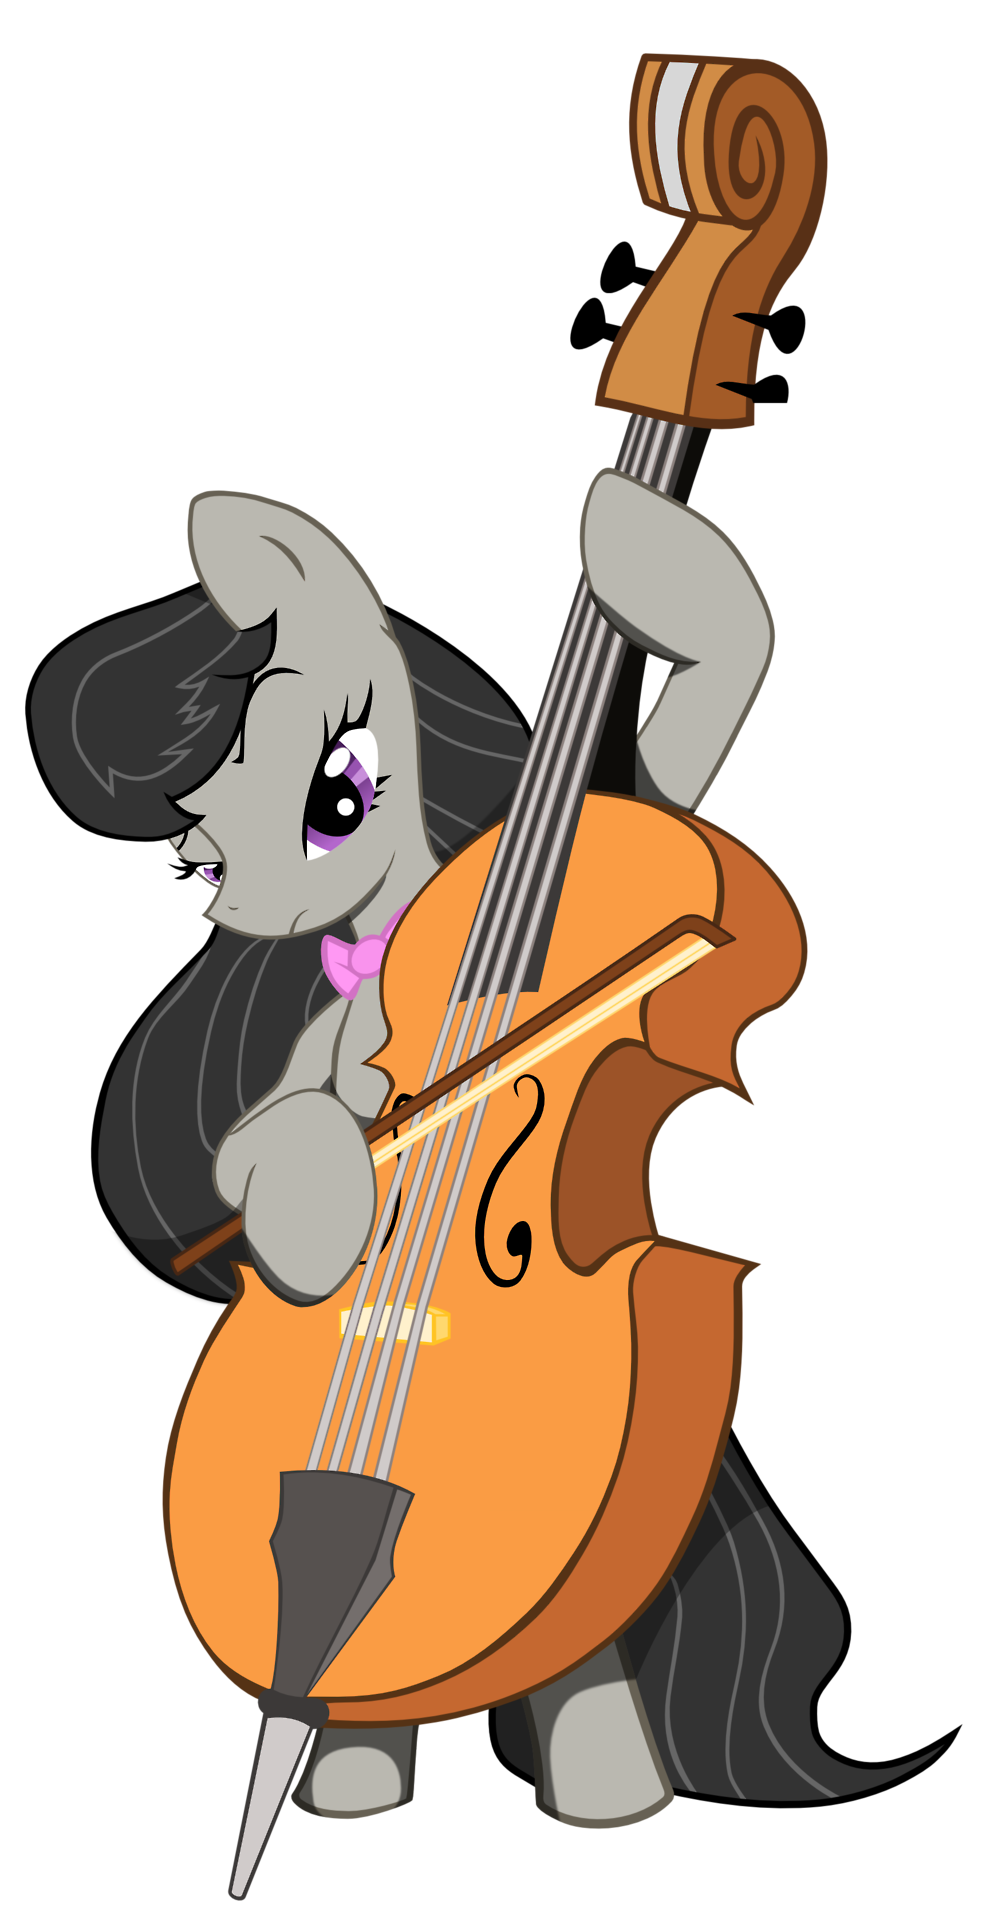 Cello vector transparent background. Octavia melody playing